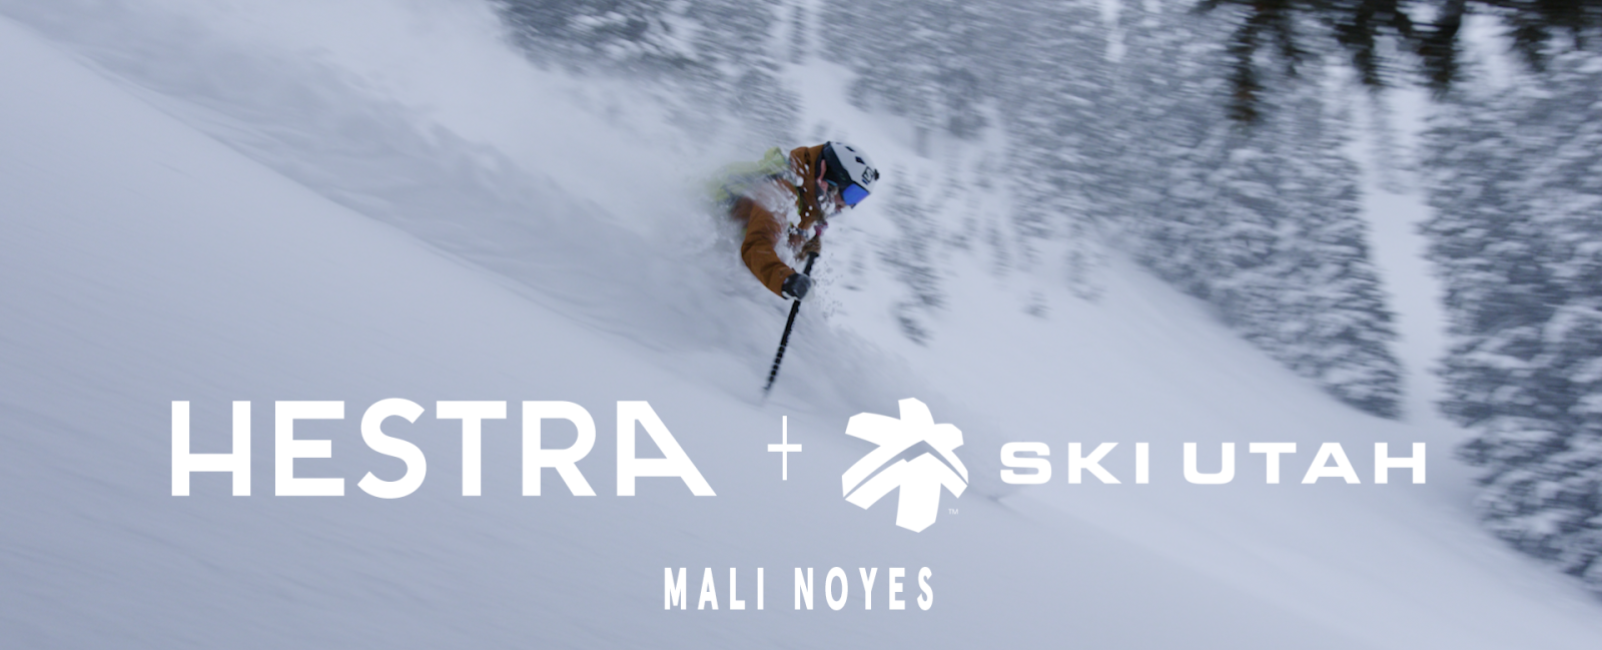 Powder People | Mali Noyes — From Nordic to Big Mountain